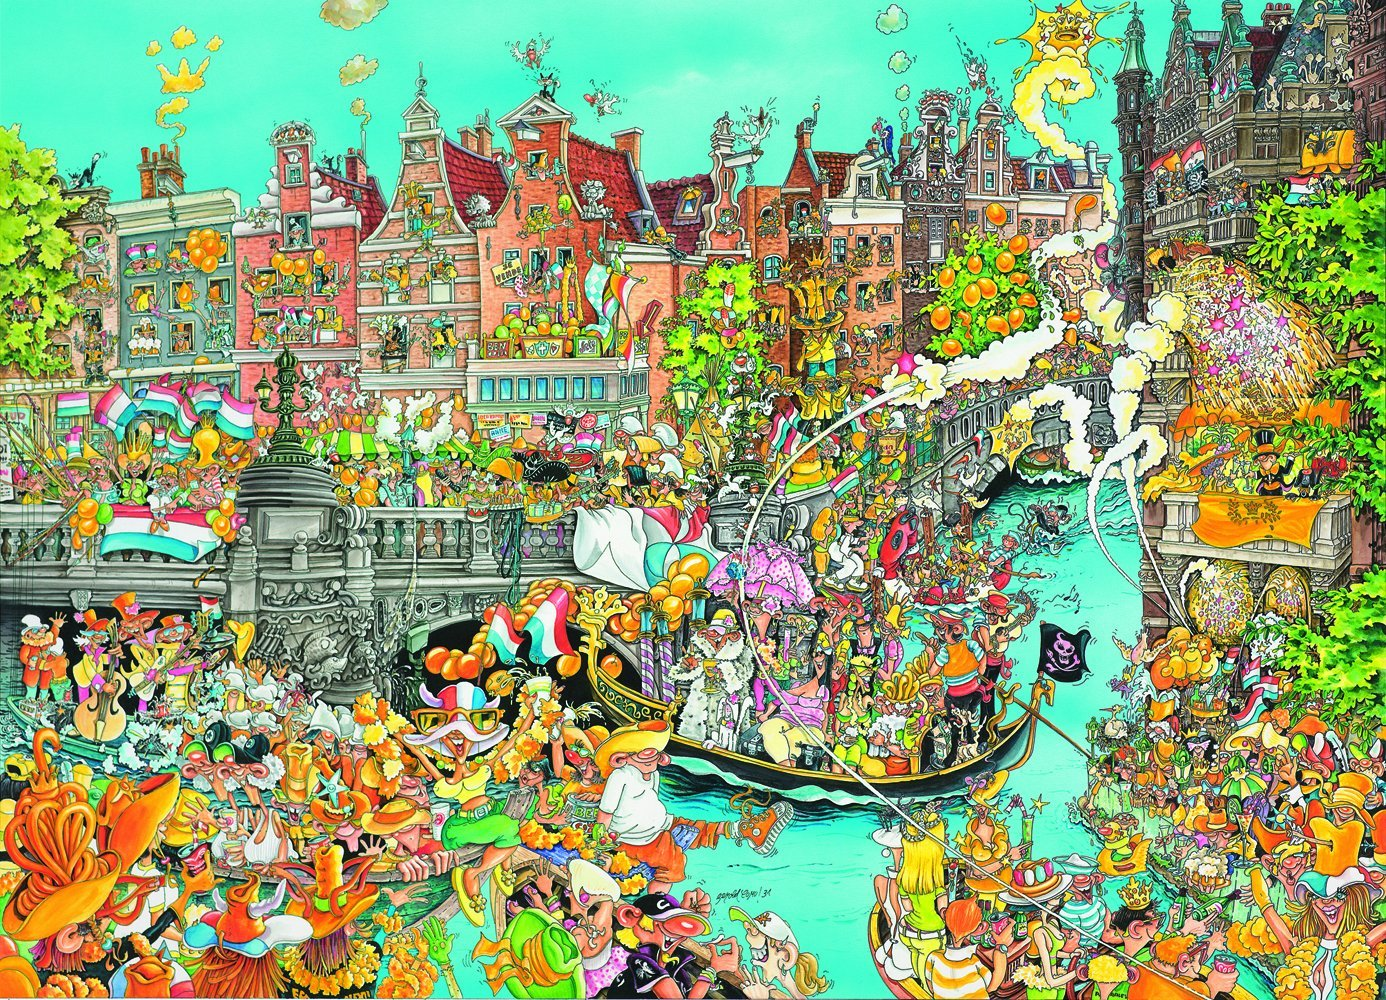 king-international-comic-collection-amsterdam-queens-day-1000-teile-puzzle-king-puzzle-05132